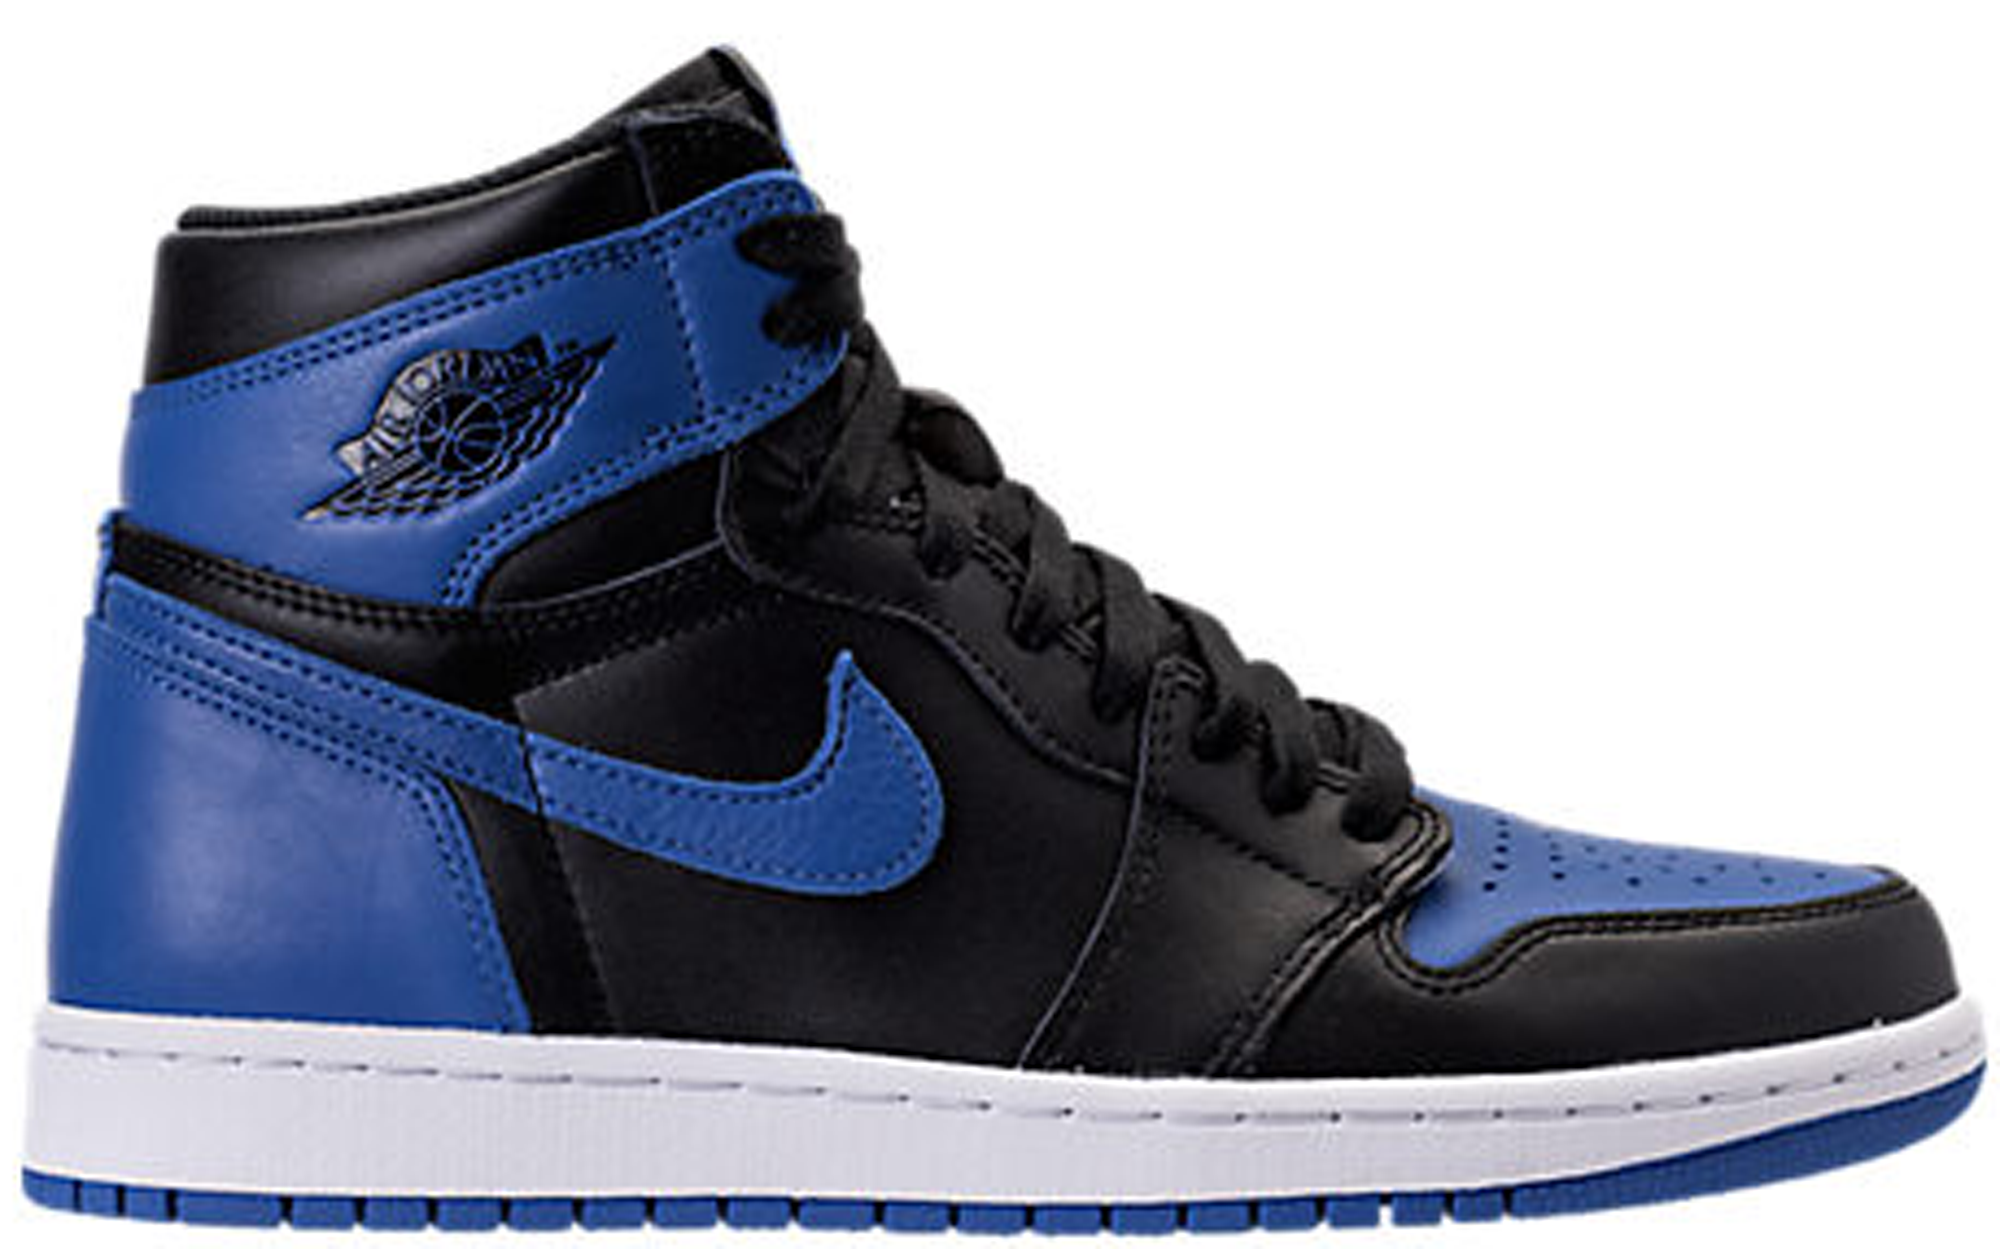 cheaper best quality outlet on sale Air Jordan 1 Retro High OG Royal (2017) - StockX News